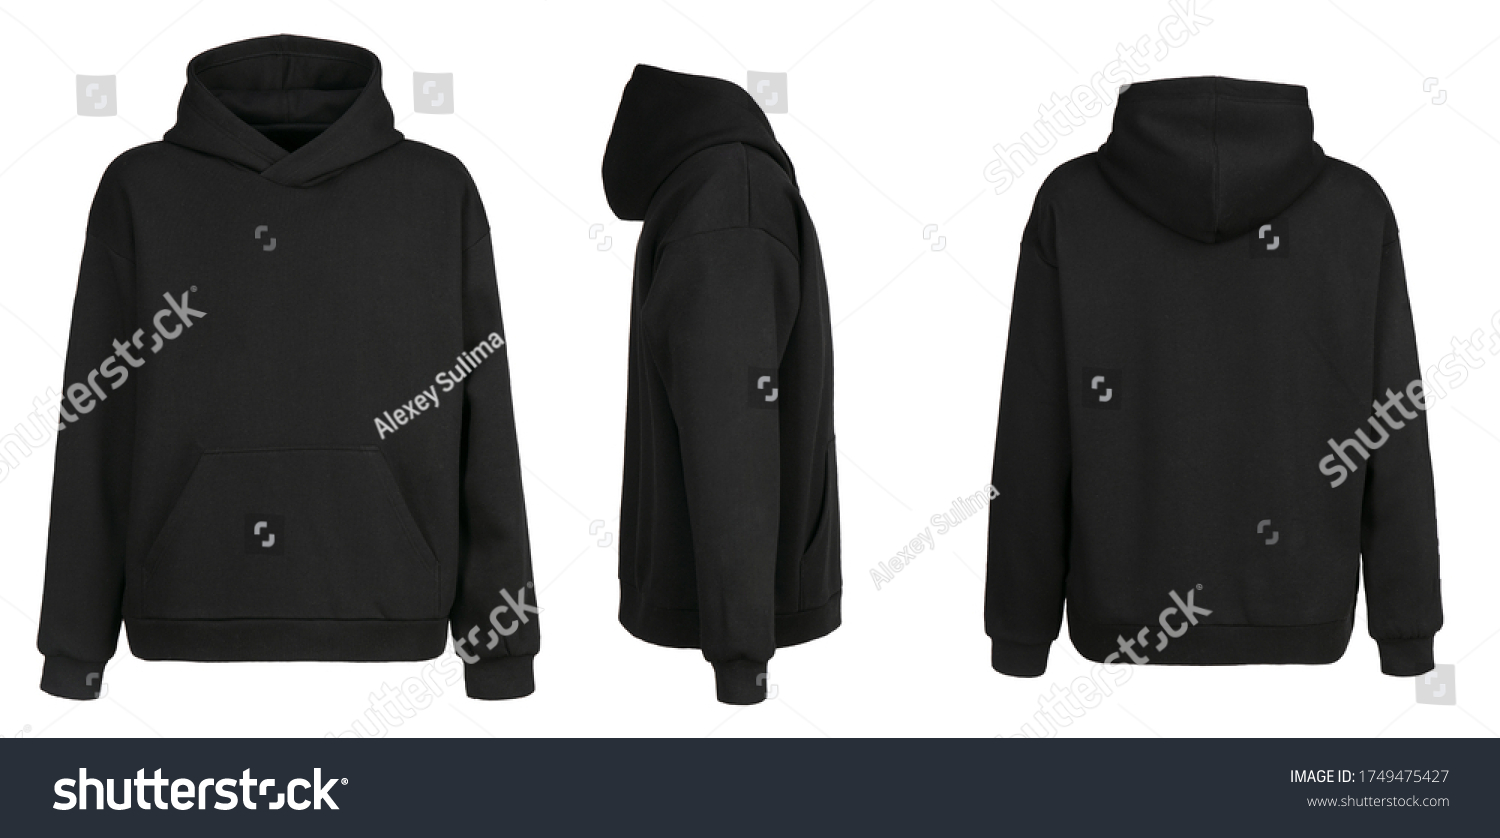 Blank black hoodie template. Hoodie sweatshirt long sleeve with clipping path, hoody for design mockup for print, isolated on white background. #1749475427